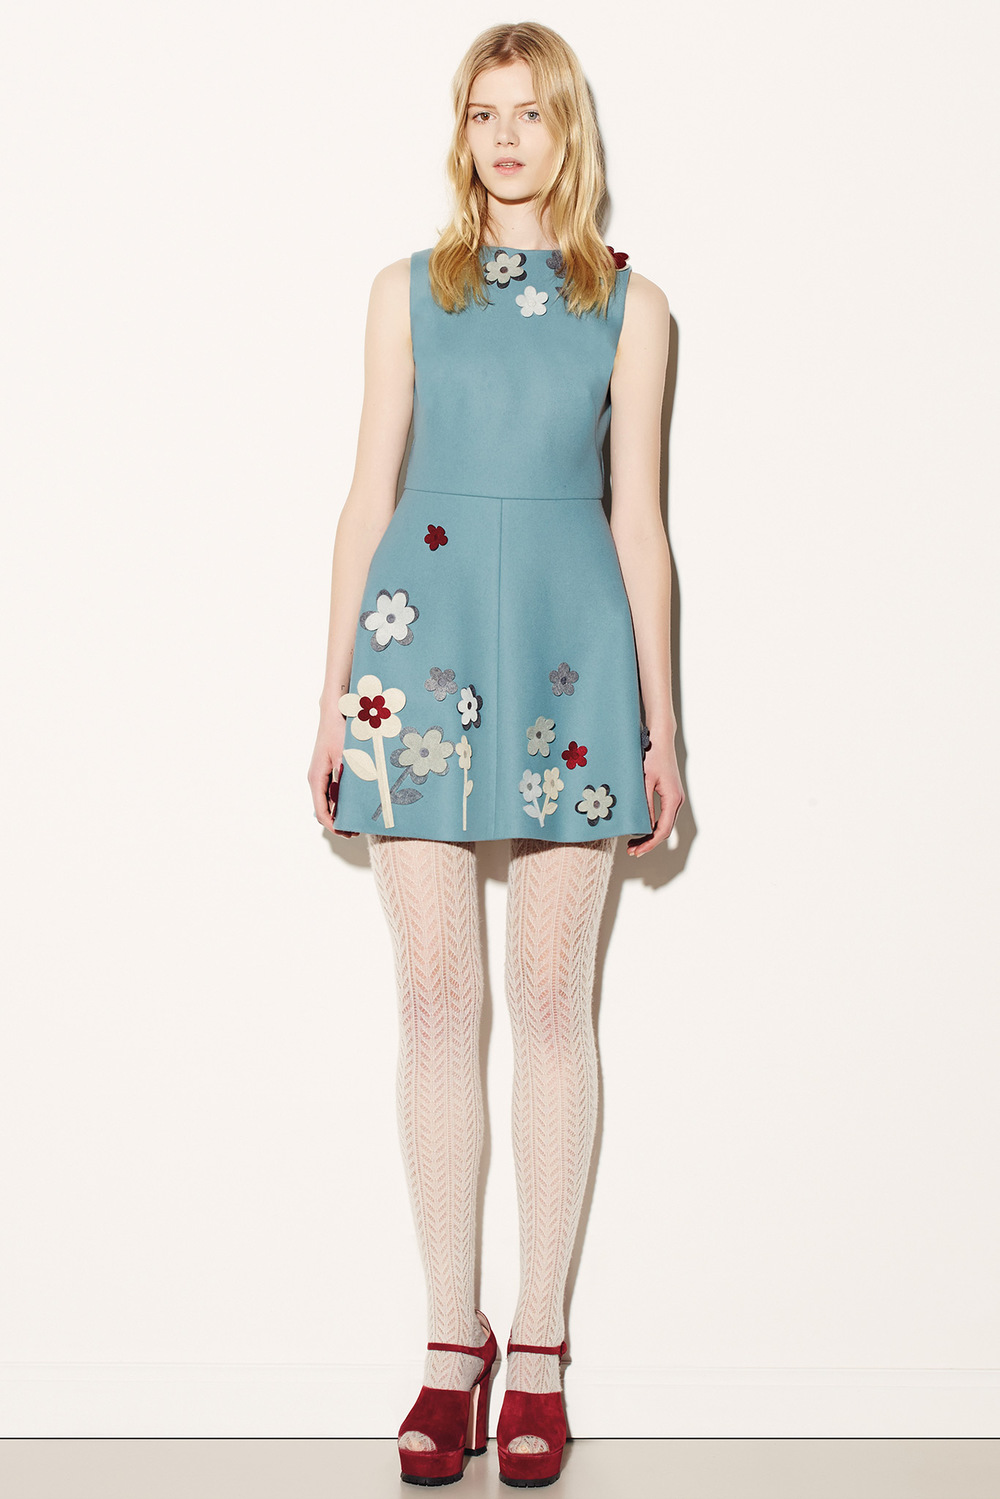 Red Valentino Dress Fall 2015